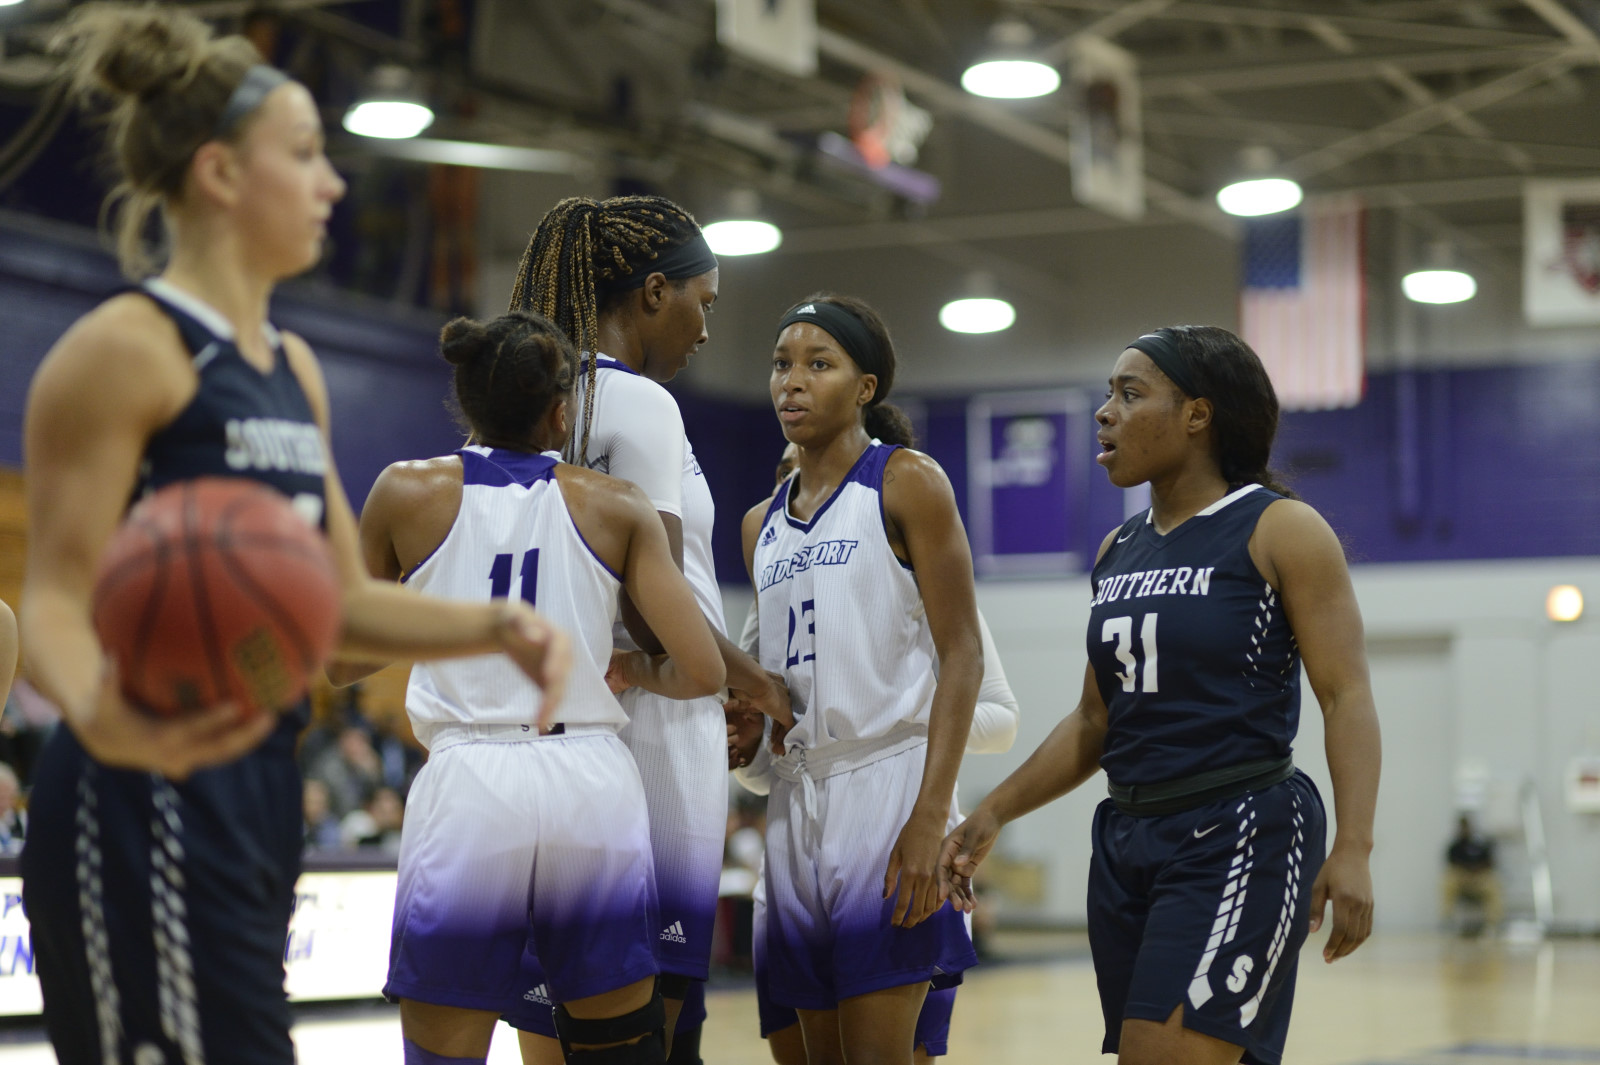 Purple Knights Wrap Up Pre-Holiday Women's Hoops Schedule With A 69-57 Loss At Merrimack